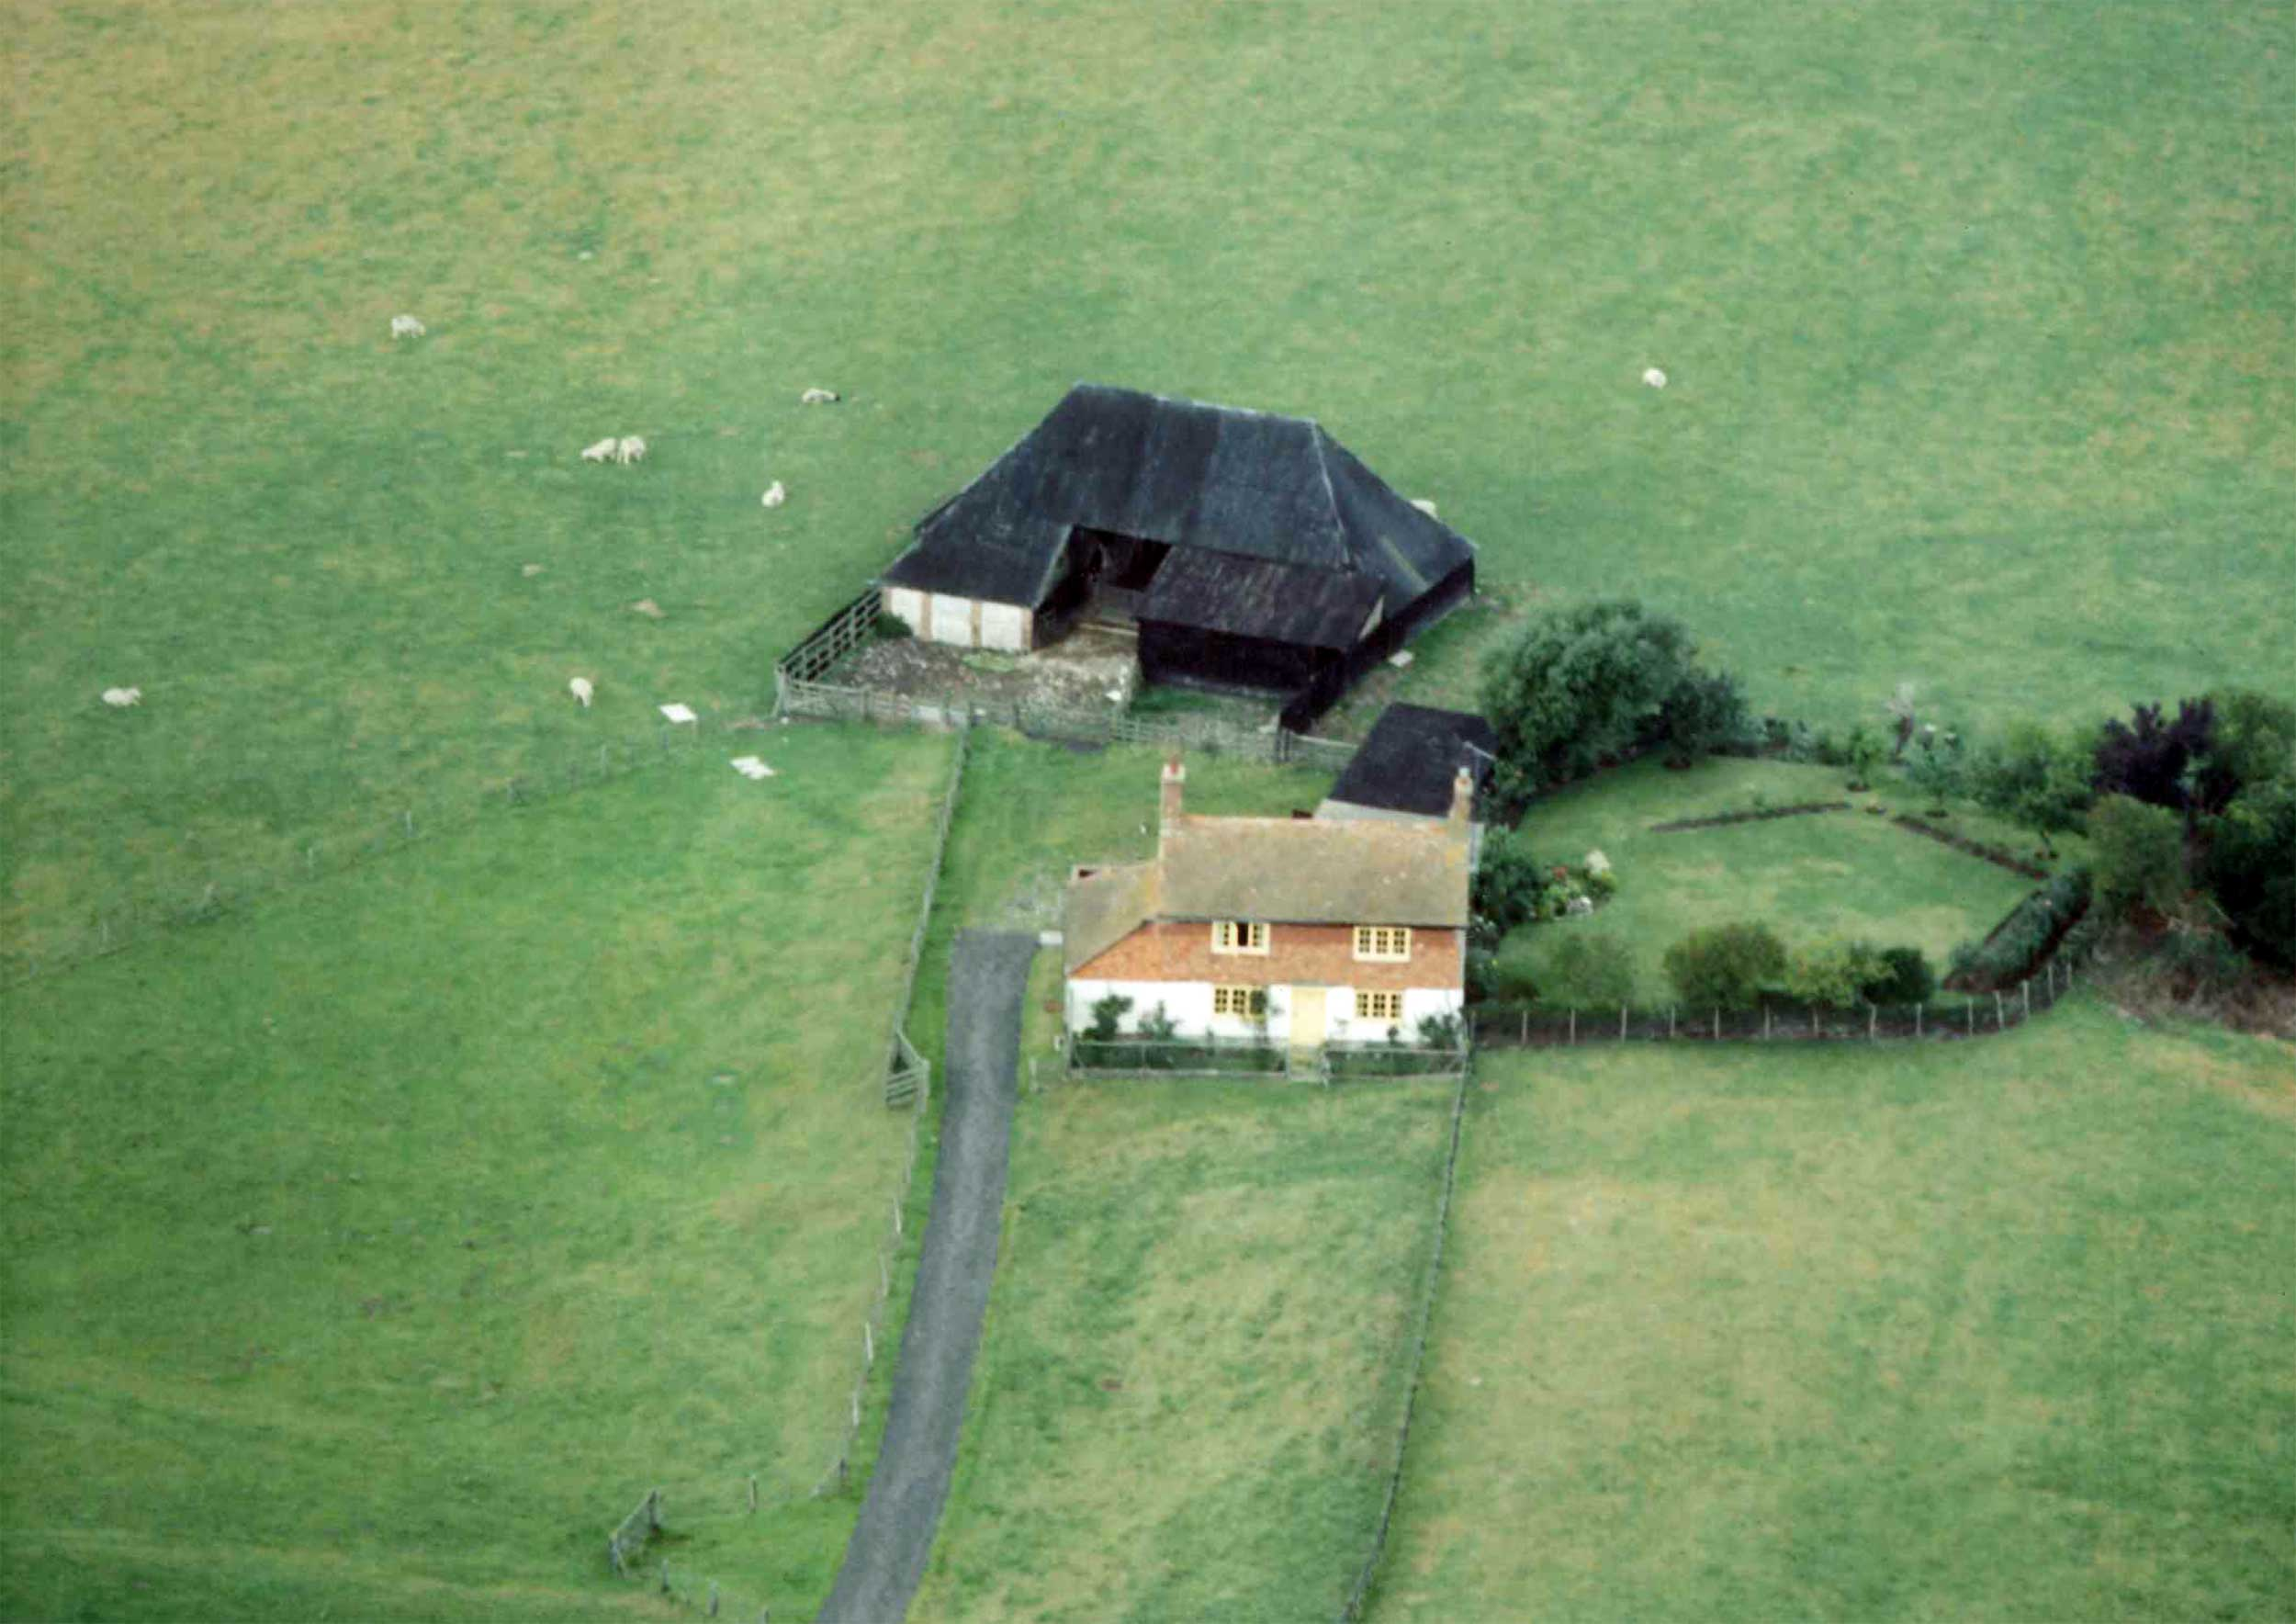 The old Coldharbour Cottage and barn